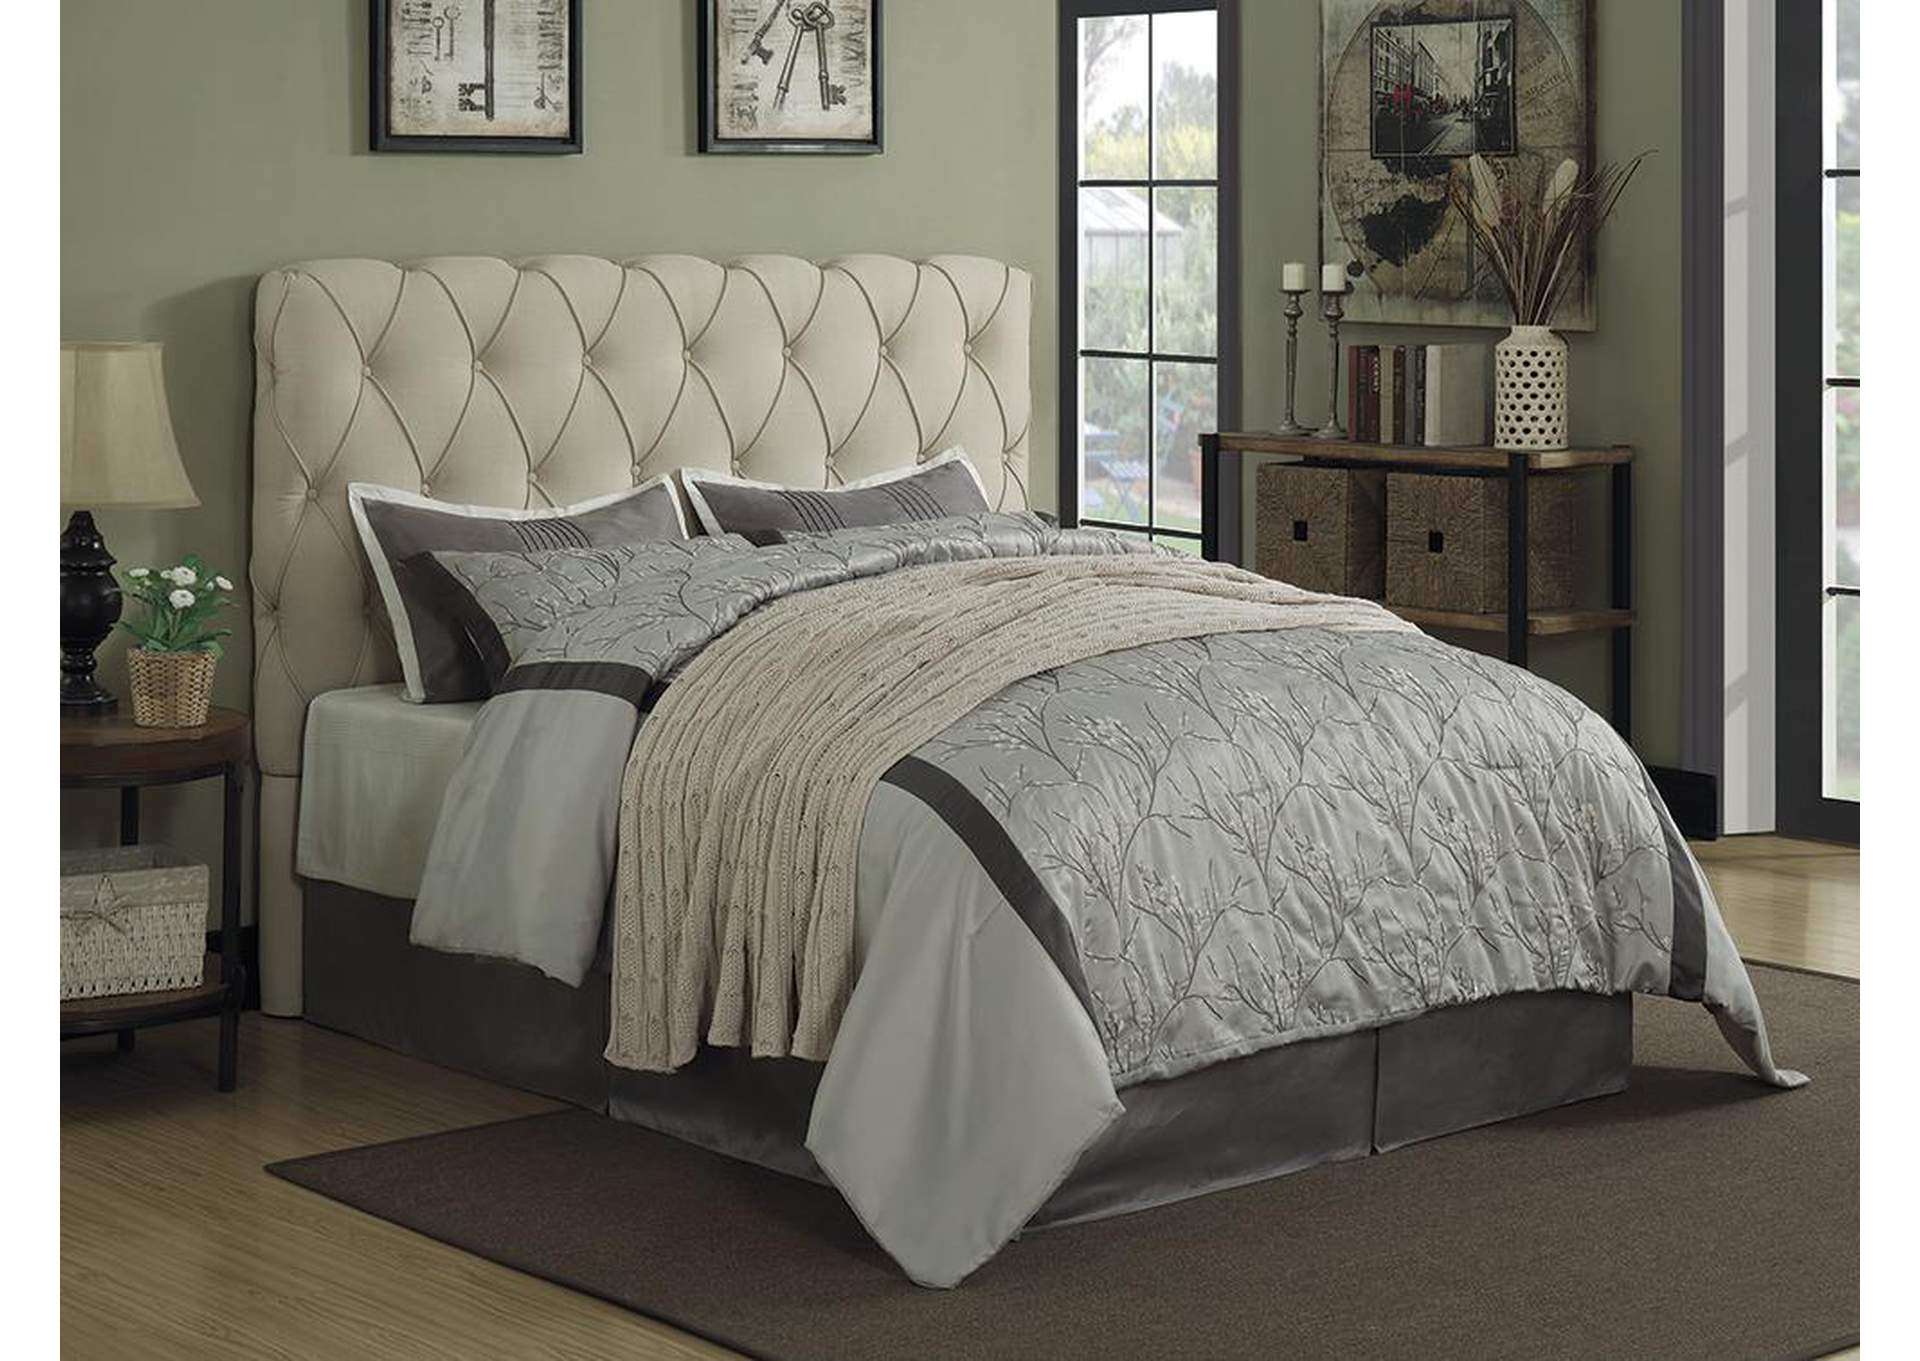 Elsinore Beige Upholstered Queen Platform Bed,Coaster Furniture